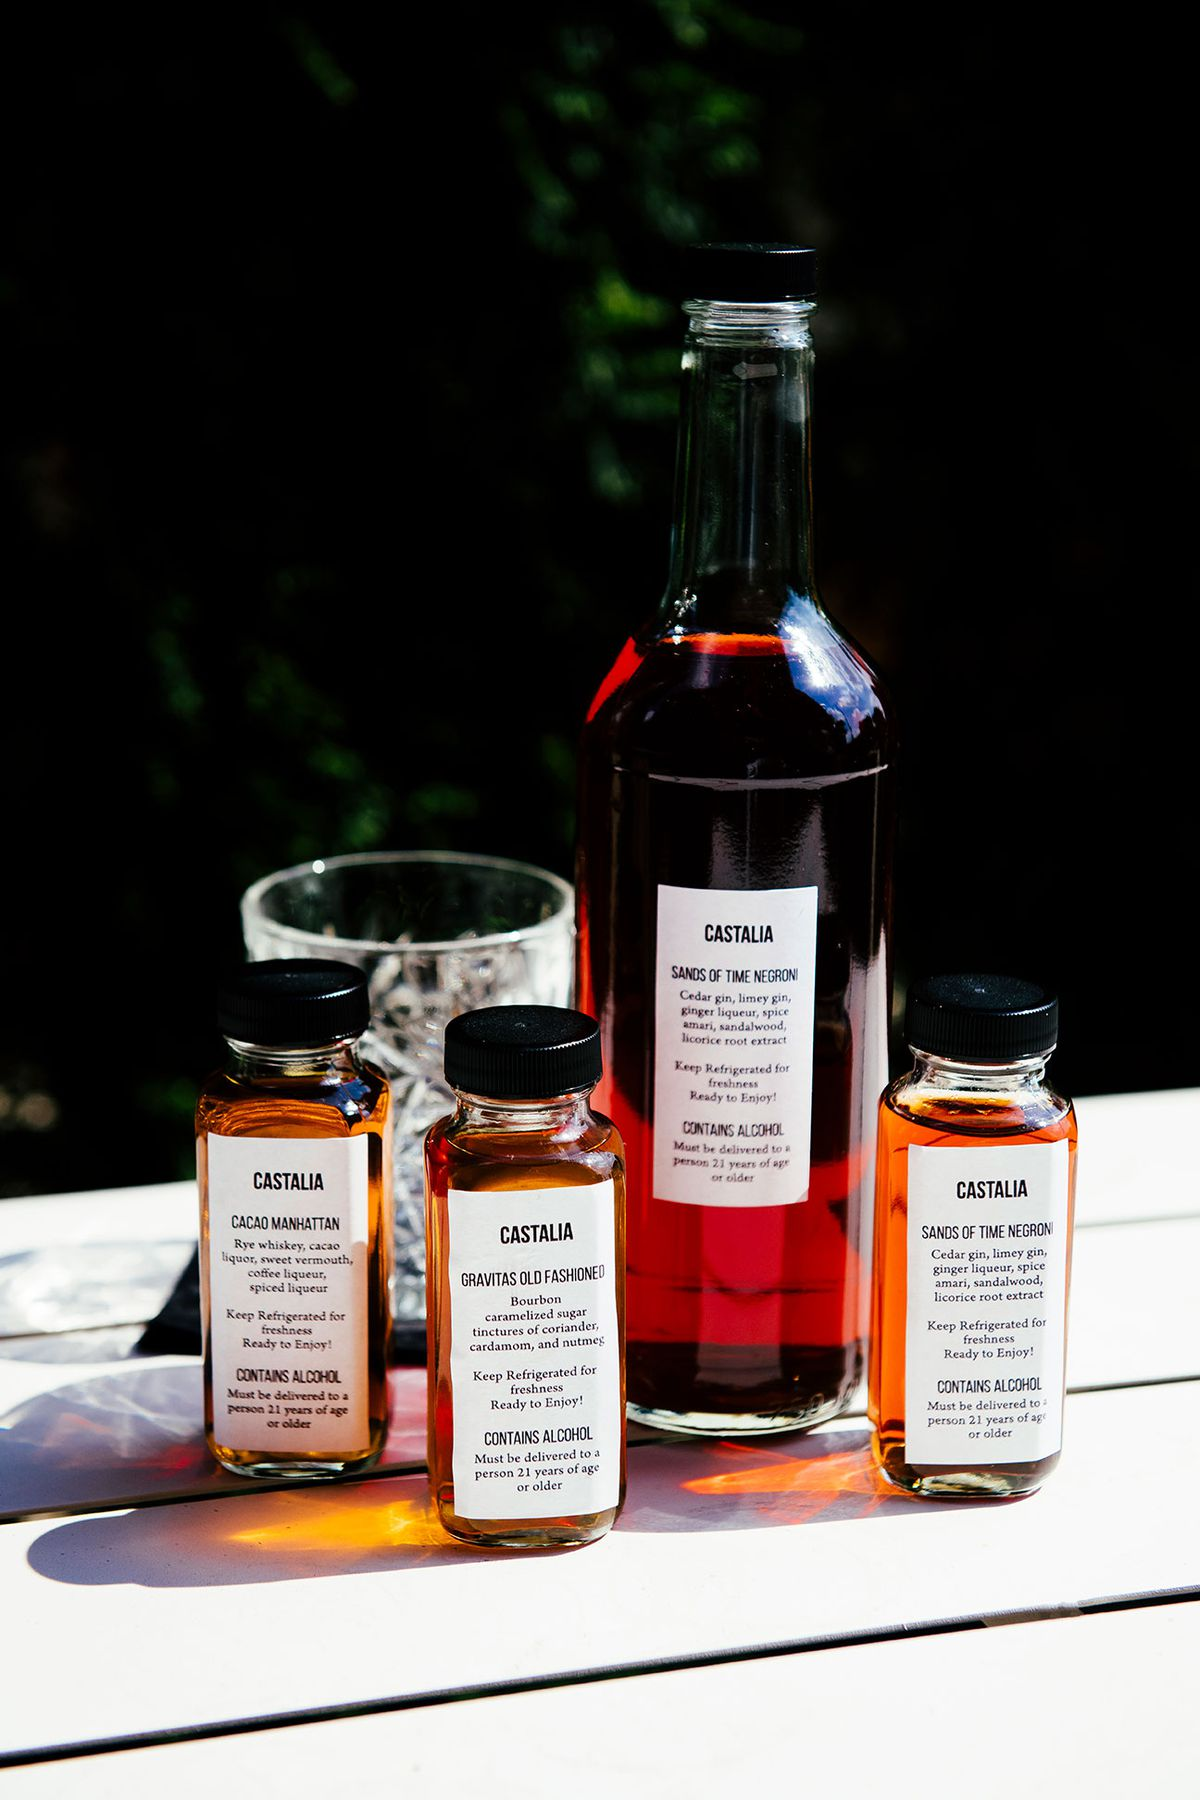 Three small rectangular bottles and a large wine-style bottled cocktail on a patio table.